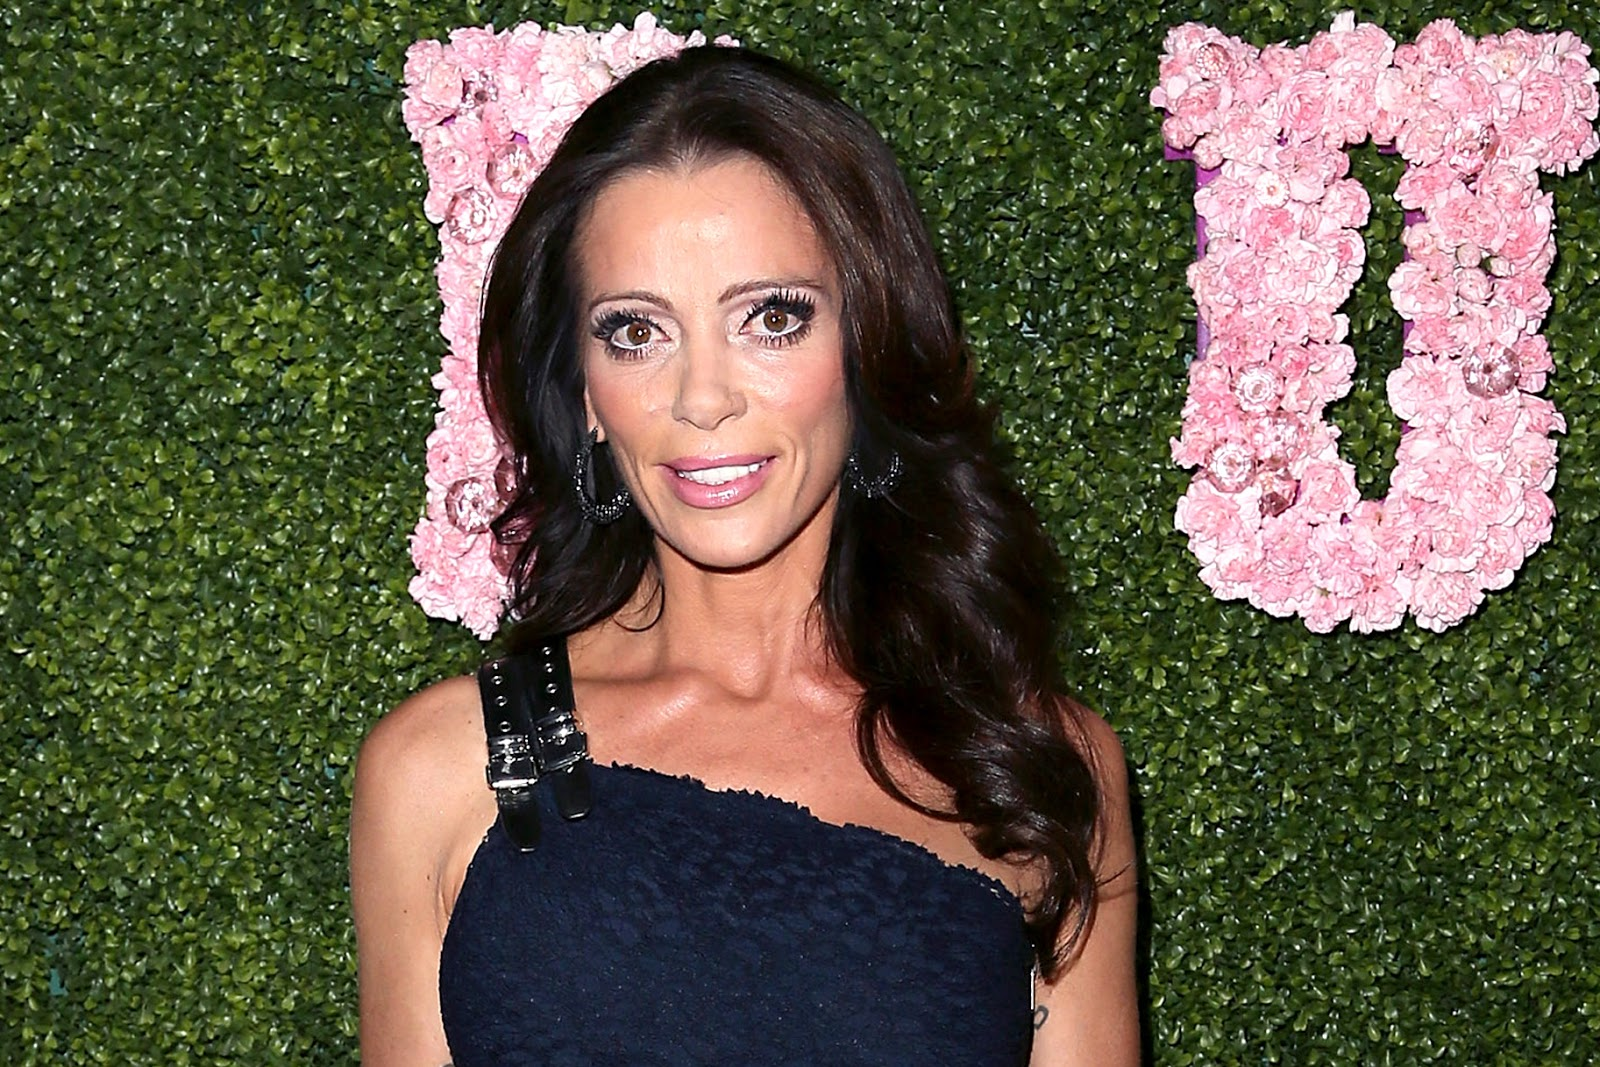 A Few Week Back The Former Real Housewives Of Beverly Hills Star Carlton Gebbia Took To Twitter And Shared A Black And White Nude Selfie Posing Along A